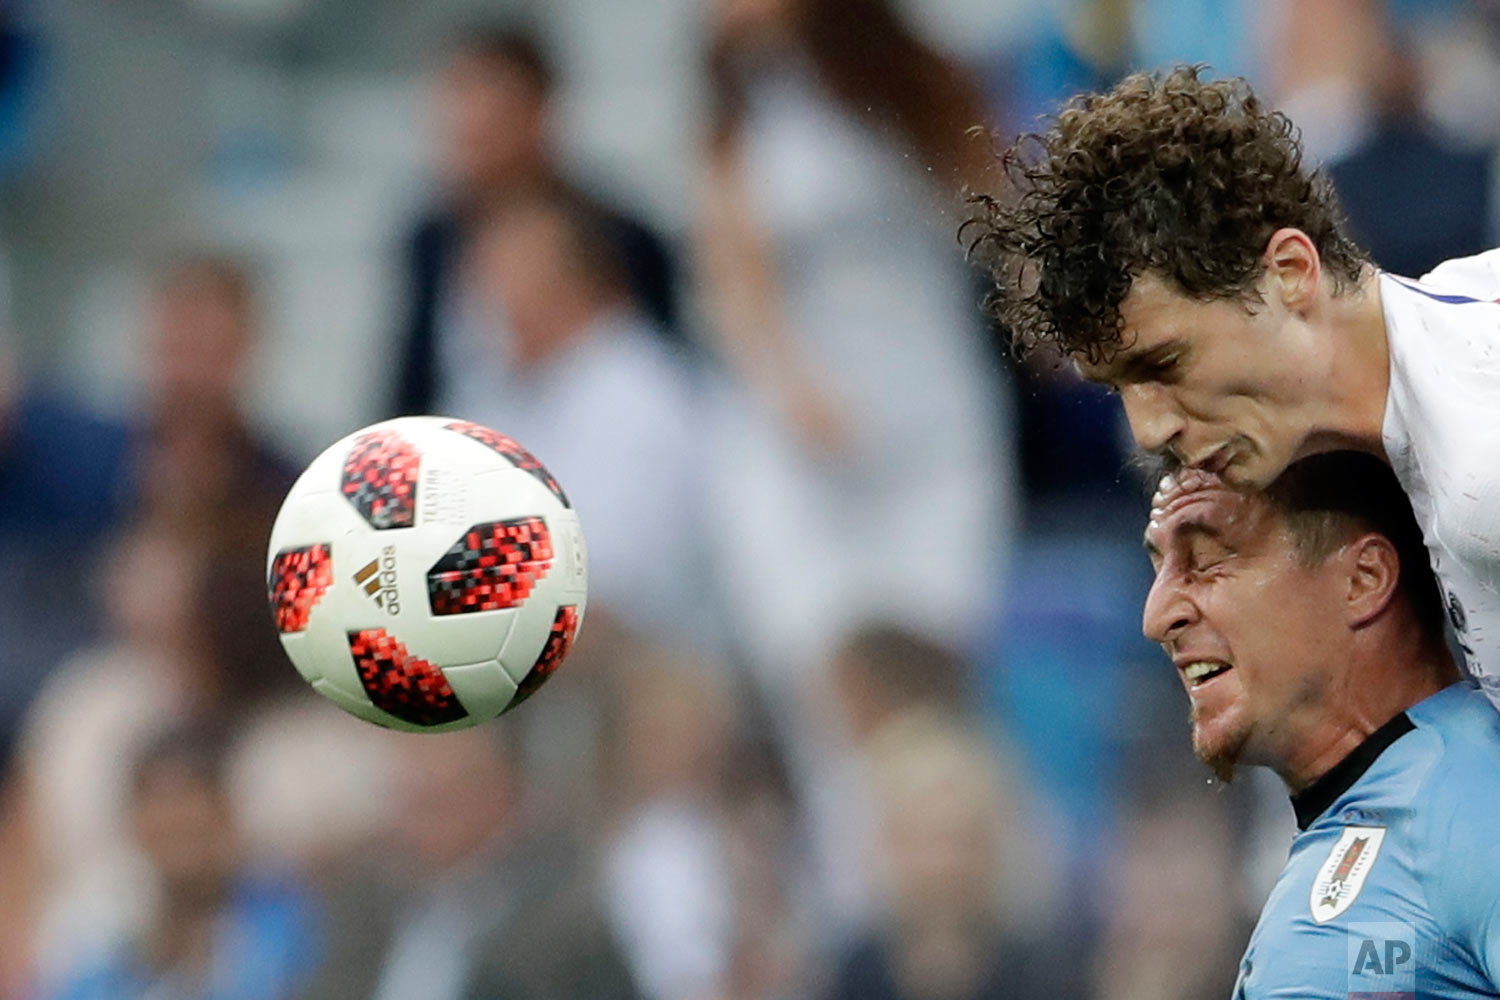 France's Benjamin Pavard, top, and Uruguay's Cristian Rodriguez challenge for the ball during the quarterfinal match between Uruguay and France at the 2018 soccer World Cup in the Nizhny Novgorod Stadium, in Nizhny Novgorod, Russia, Friday, July 6, 2018. (AP Photo/Petr David Josek)